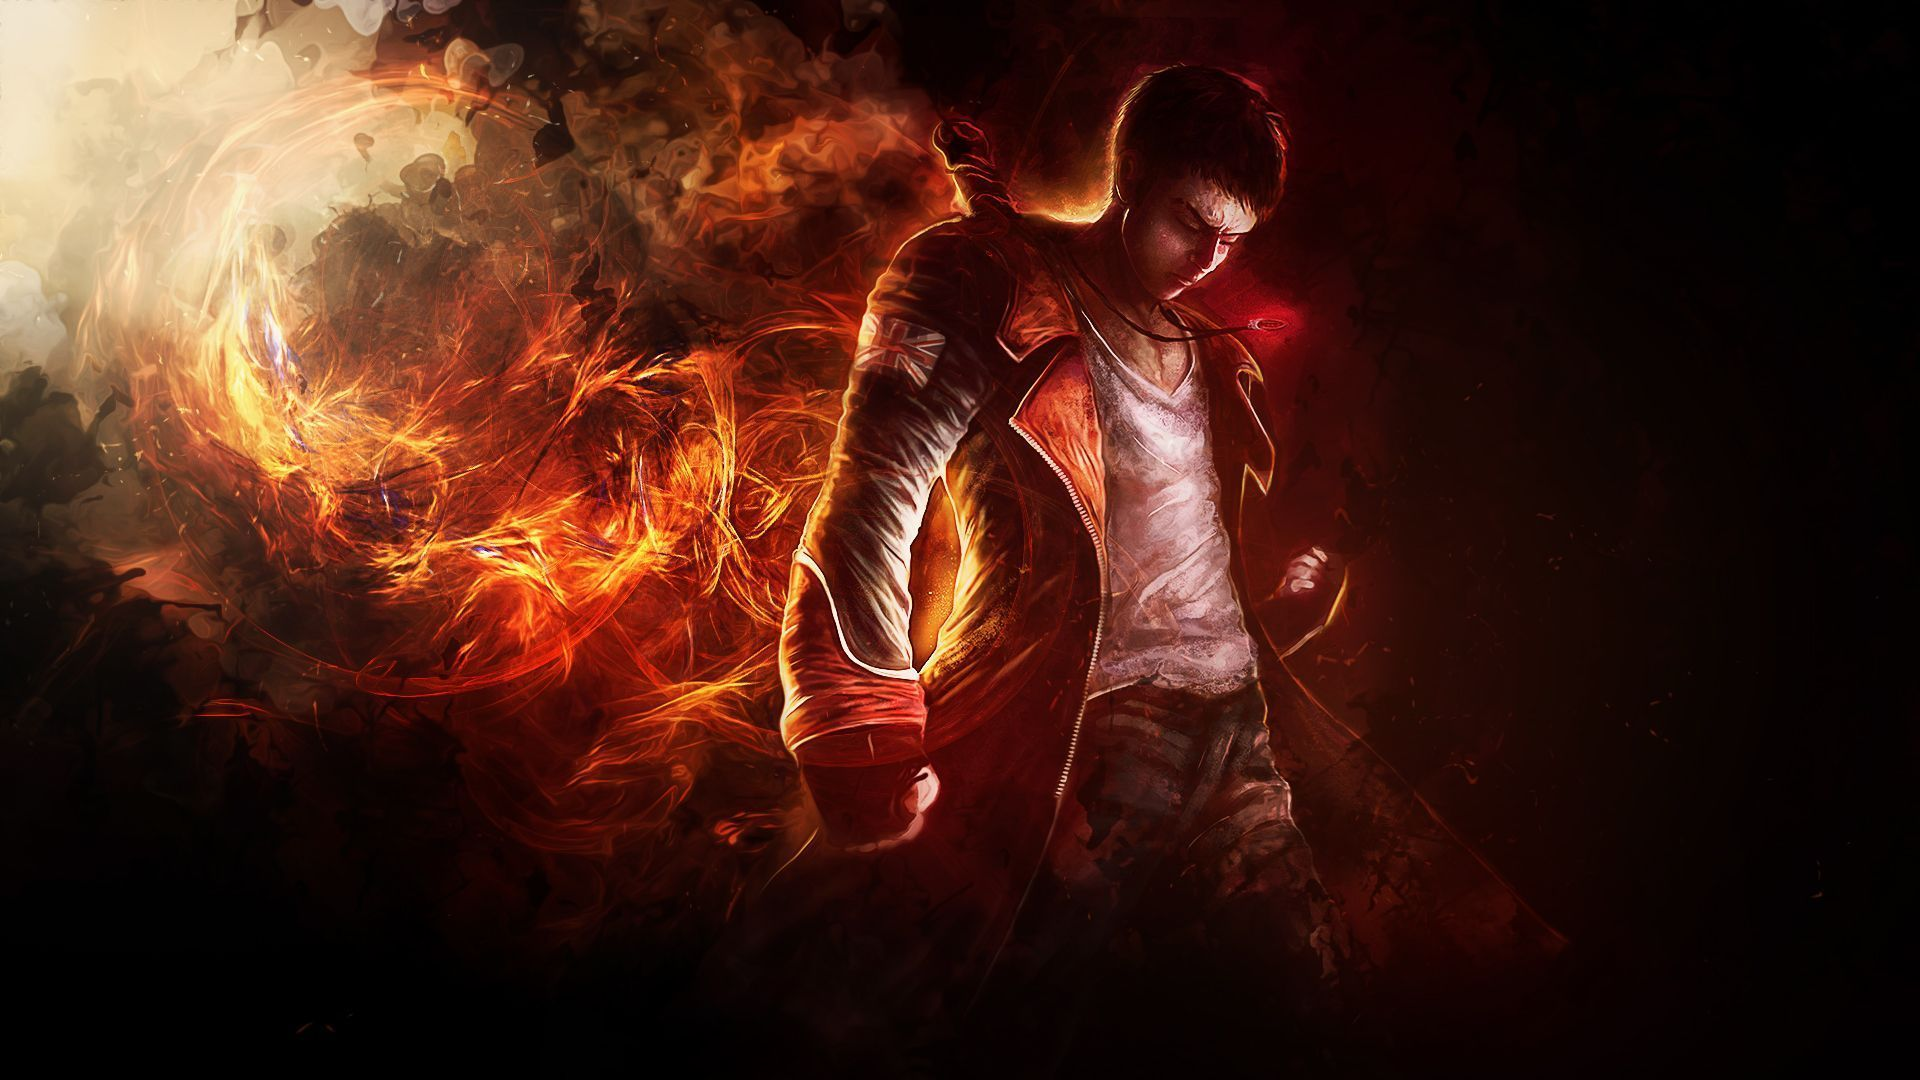 ghost and demon wallpapers free download hd latest new - HD1366×768